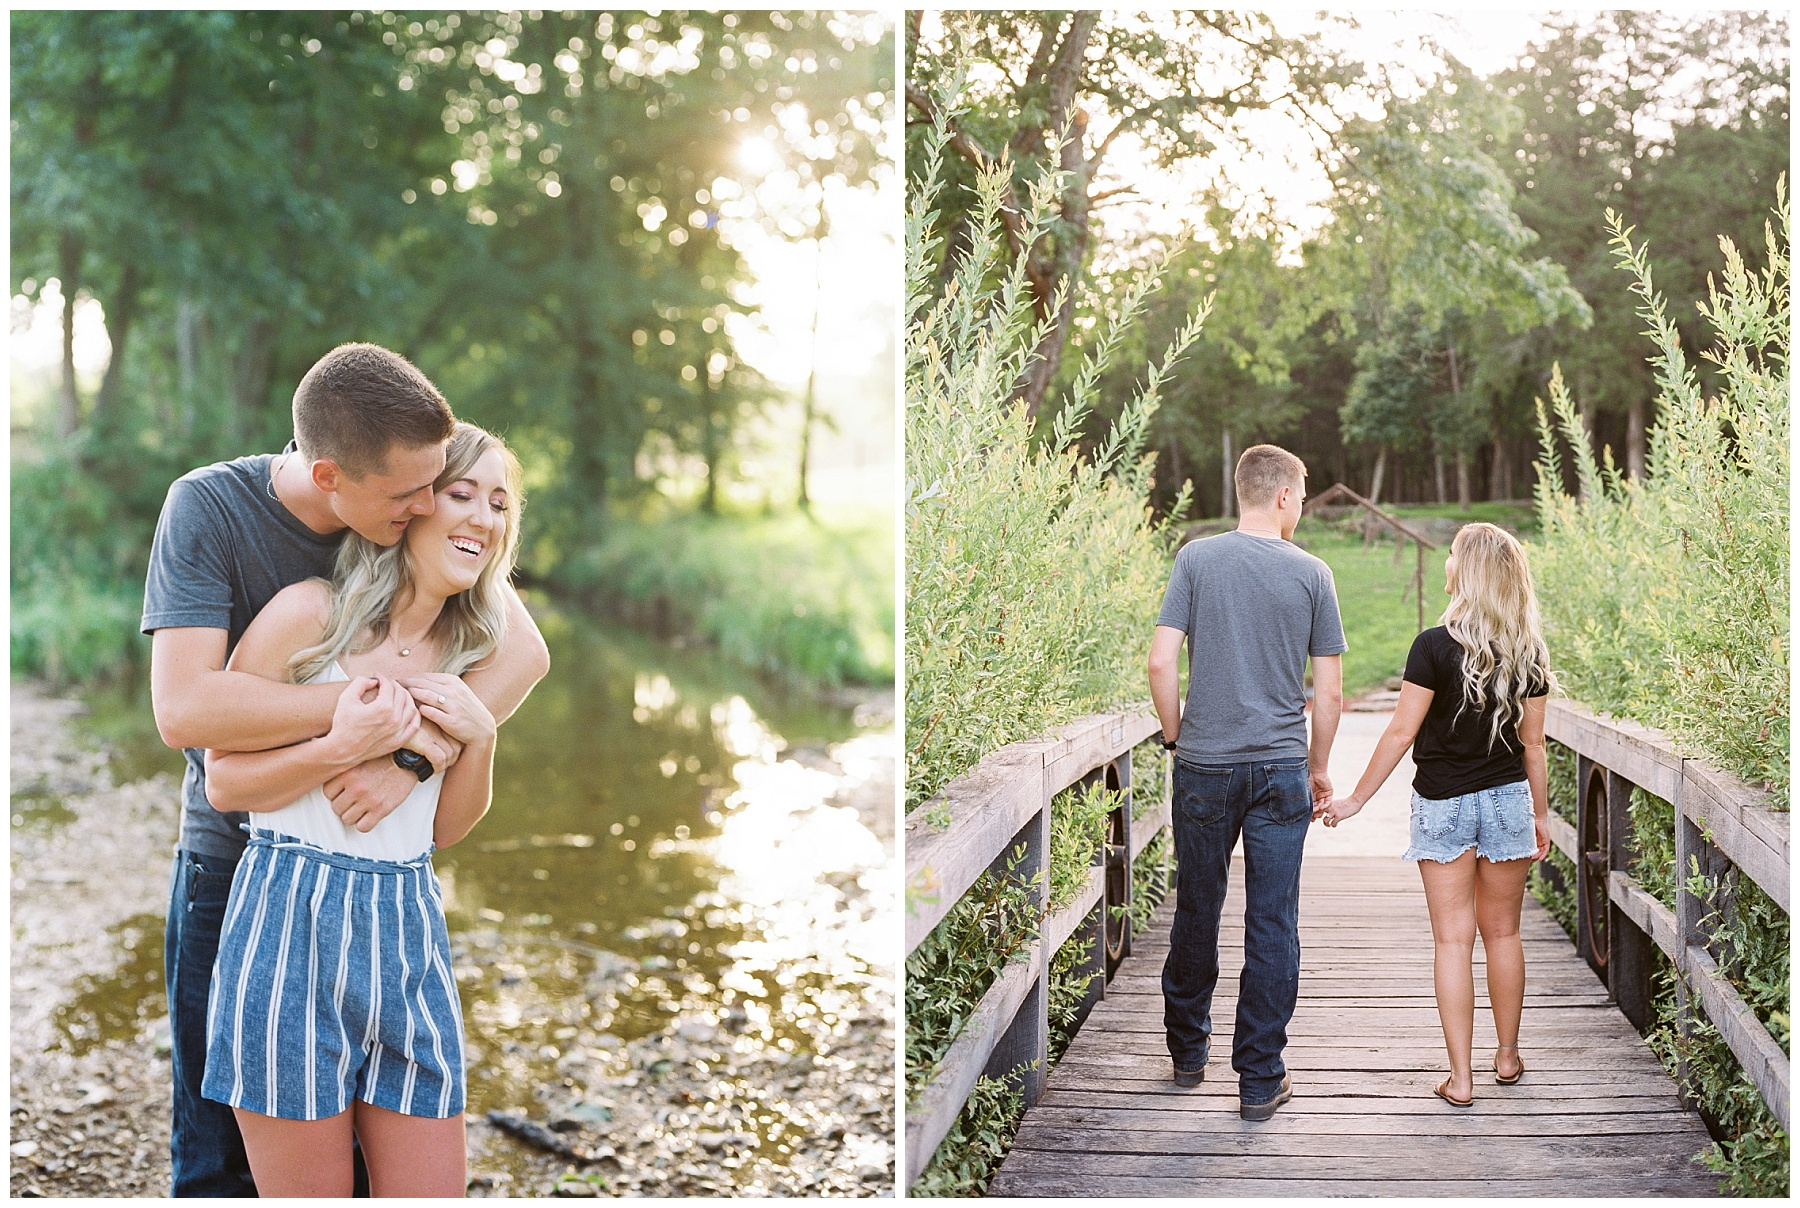 Golden Hour Summer Engagement Session at Lakeside Valley and Vineyards at Kempkers Back 40 by Kelsi Kliethermes Photography Best Missouri and Maui Wedding Photographer_0012.jpg